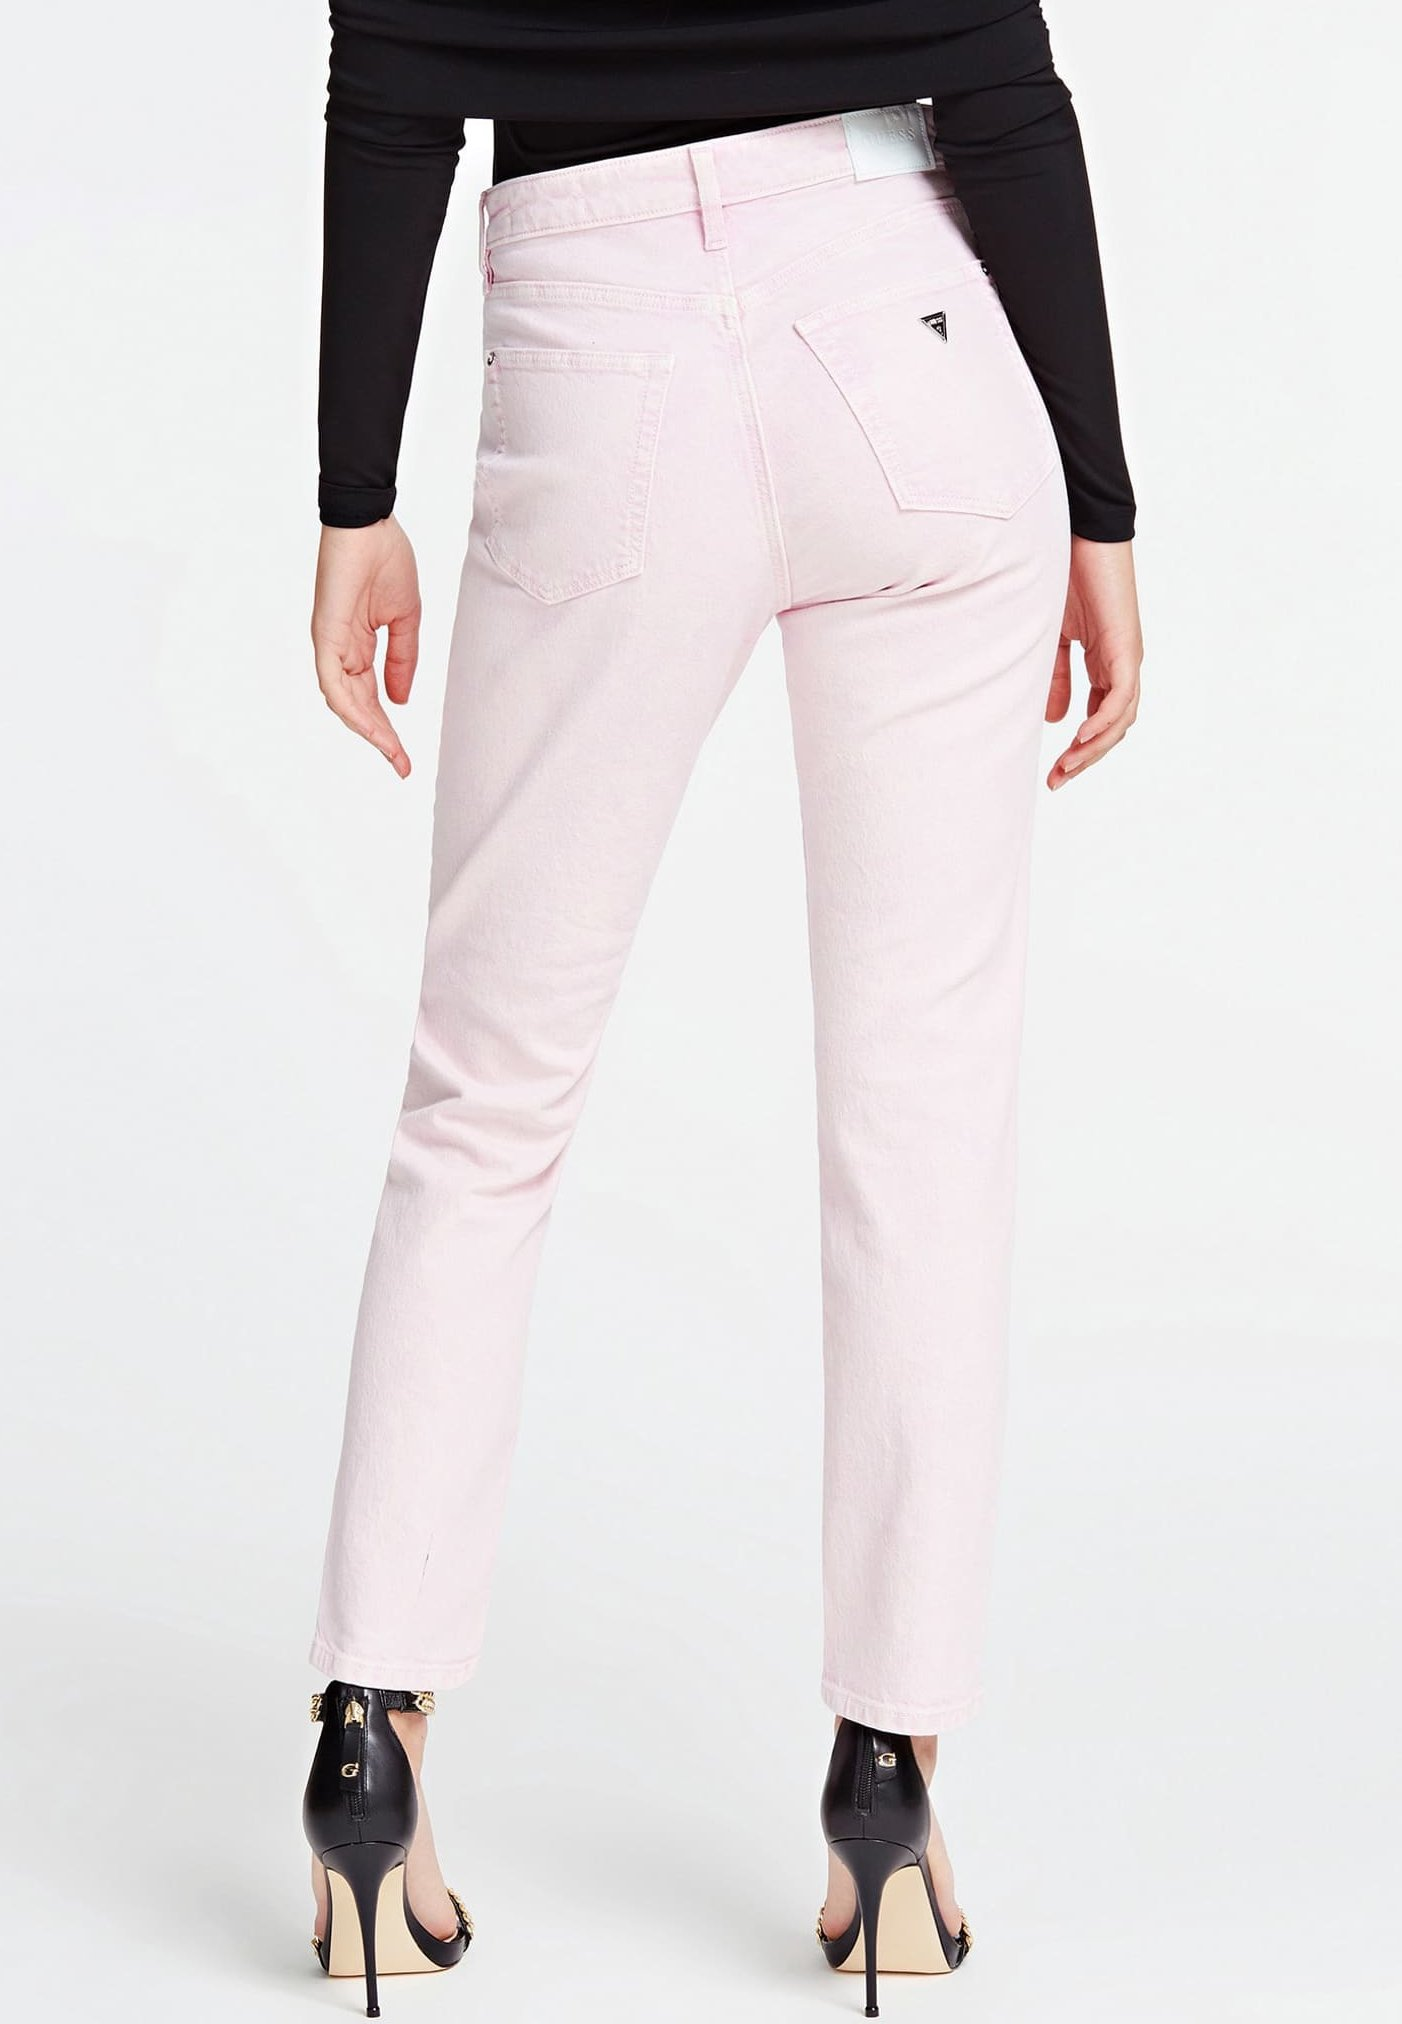 Guess Jeansy Slim Fit - rose